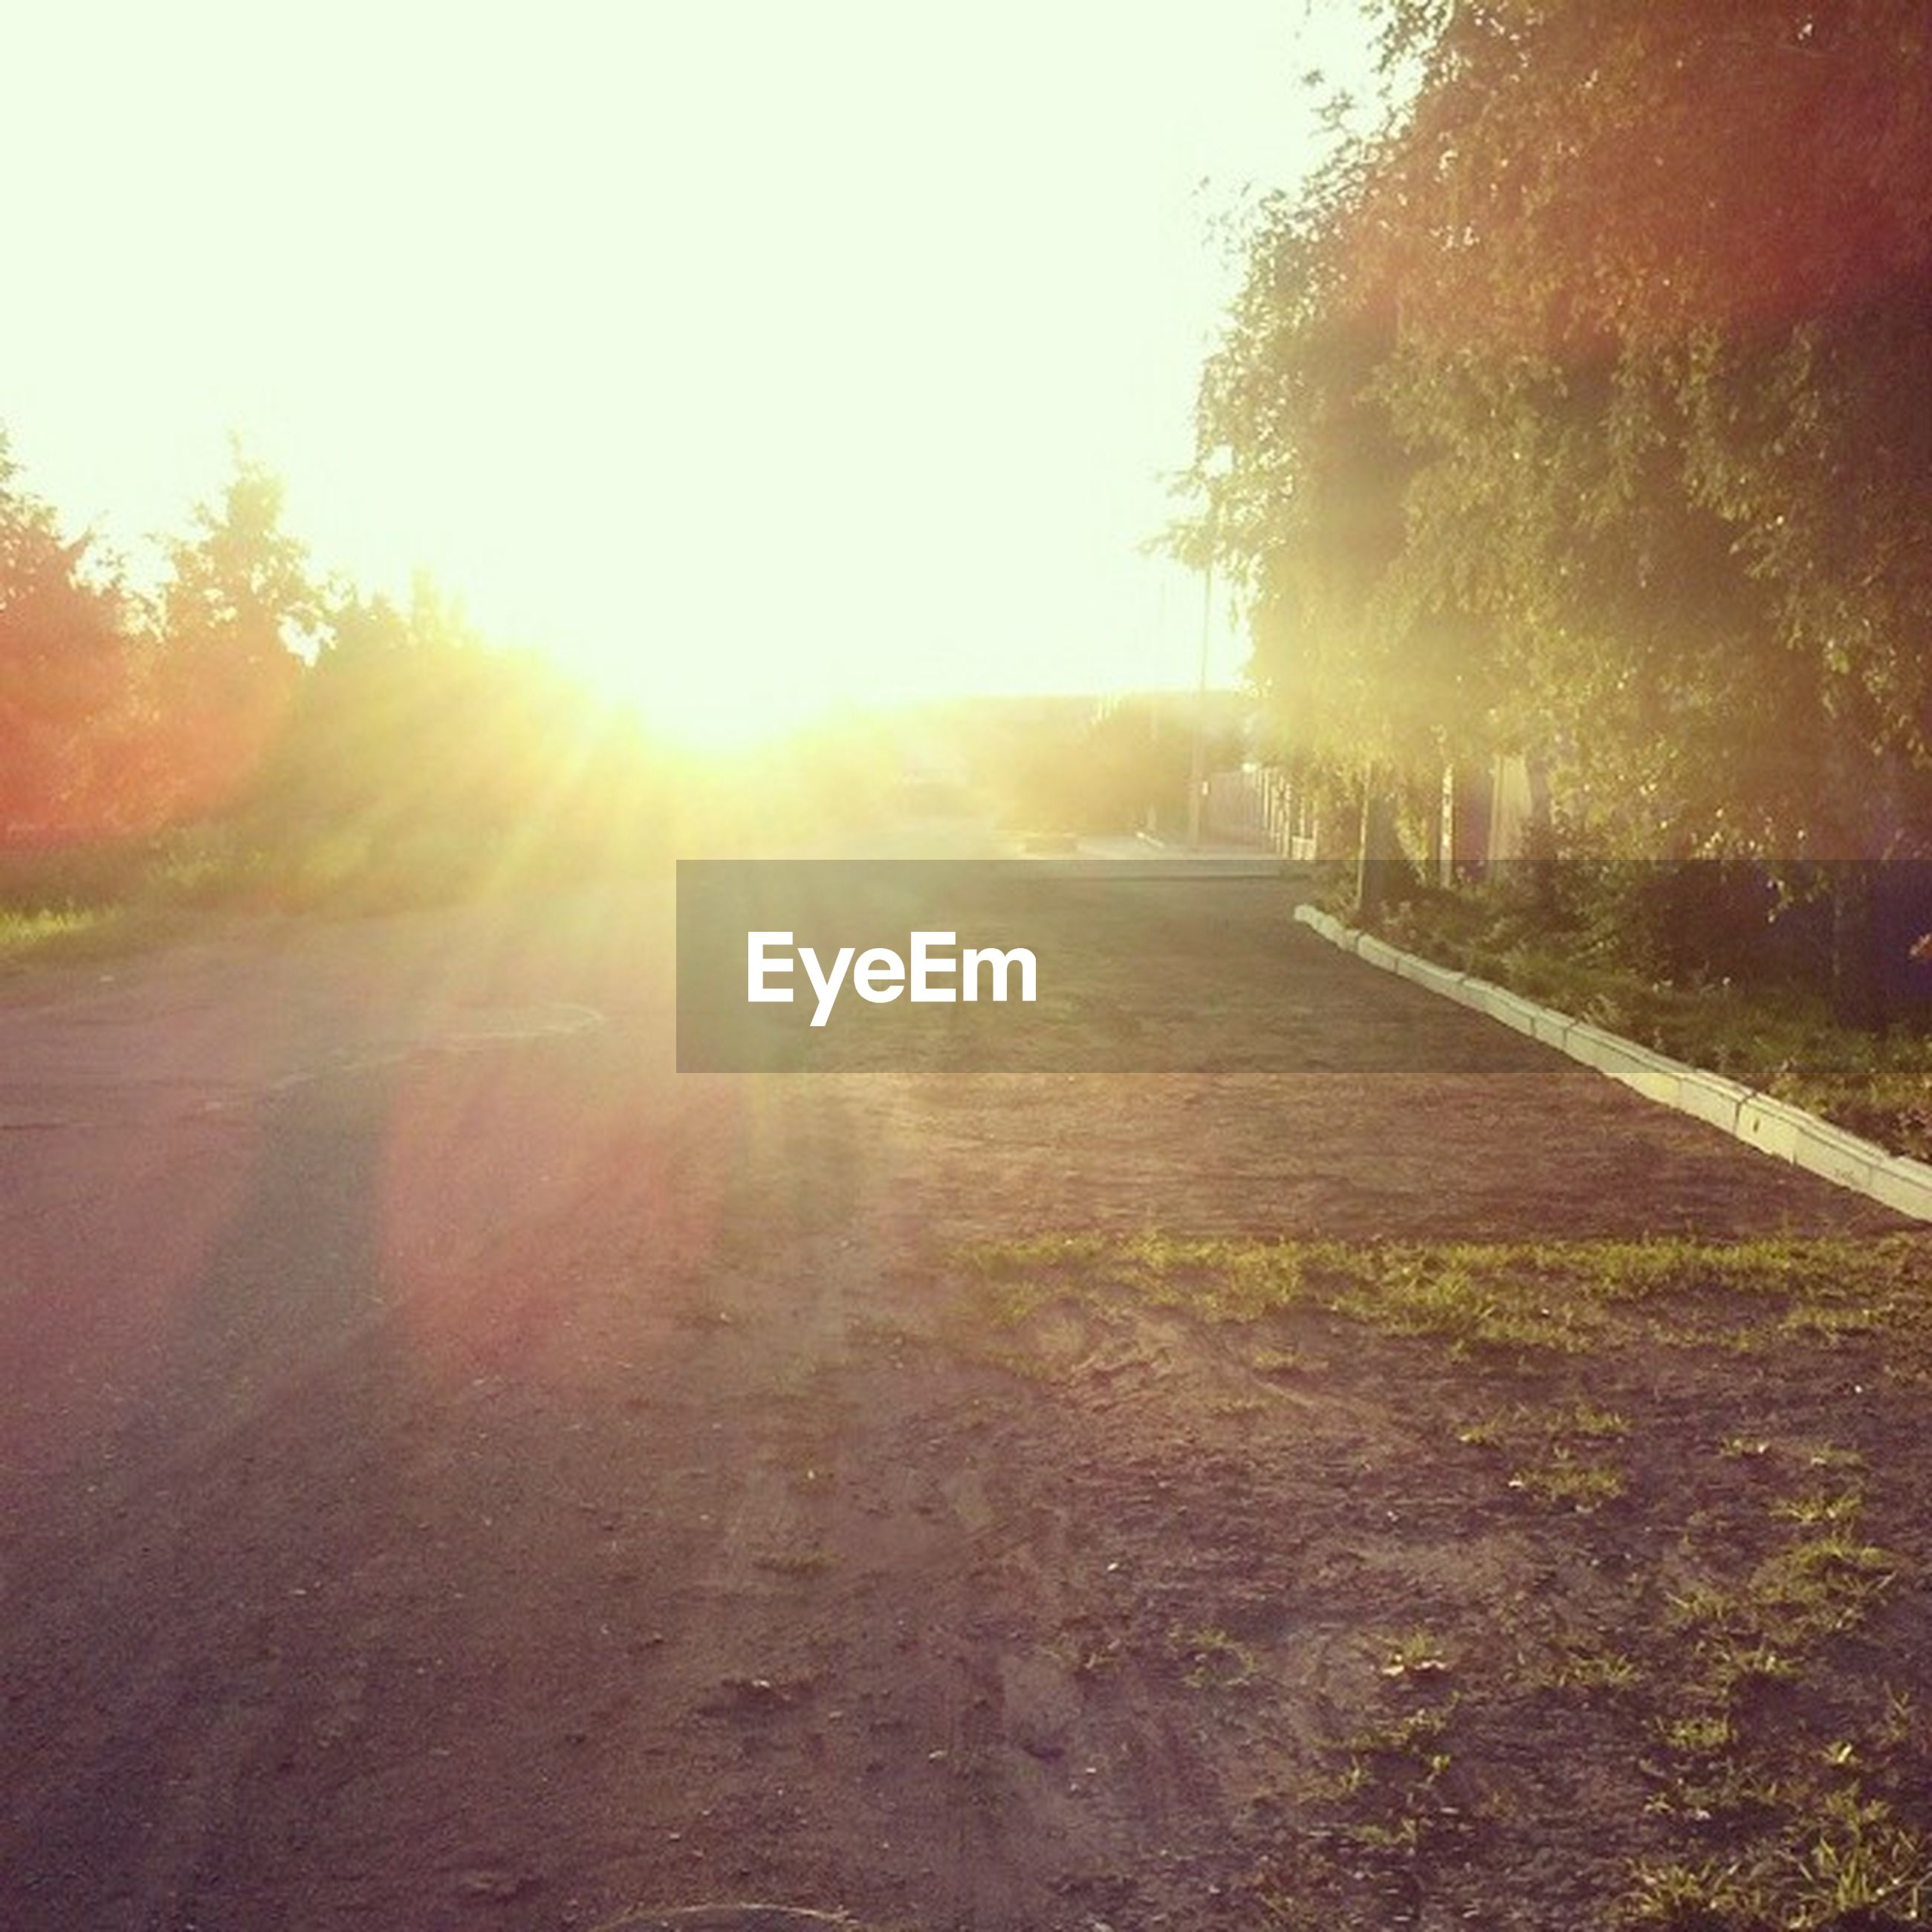 sun, tree, transportation, the way forward, clear sky, sunlight, sunset, road, sunbeam, lens flare, diminishing perspective, nature, vanishing point, tranquility, street, sky, tranquil scene, landscape, outdoors, field